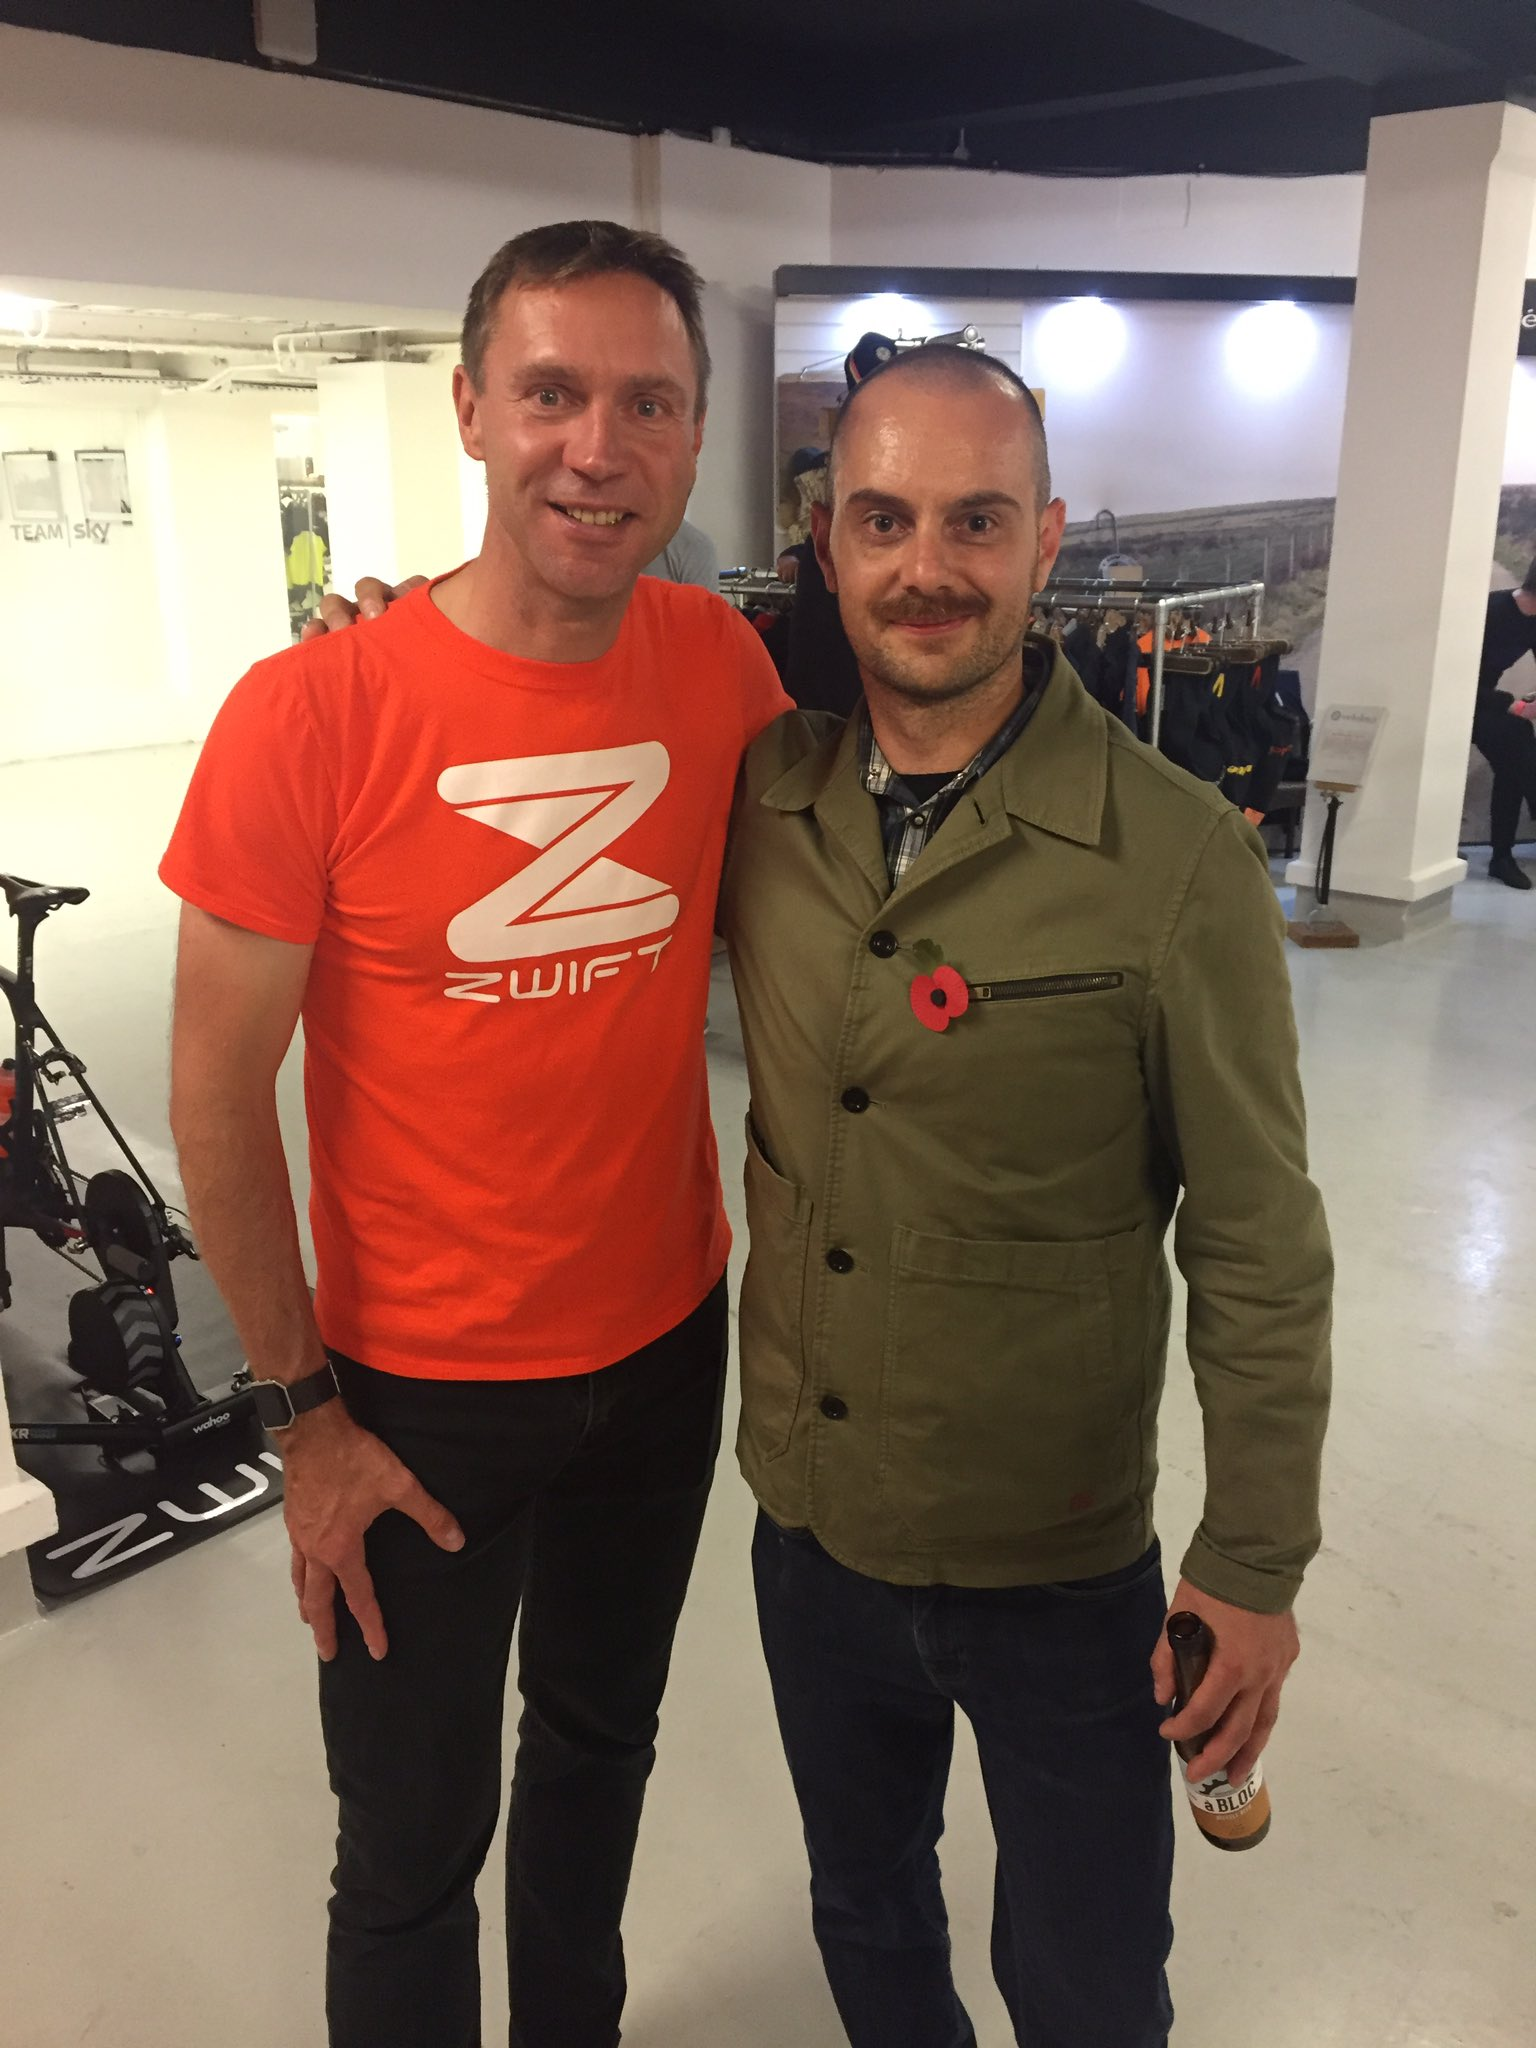 Awesome evening @rouleurclassic topped off by meeting the legend @thejensie #shutuplegs #gozwift #rouleurclassic #mysommets #sommetier https://t.co/Zs6qnV2Fwp